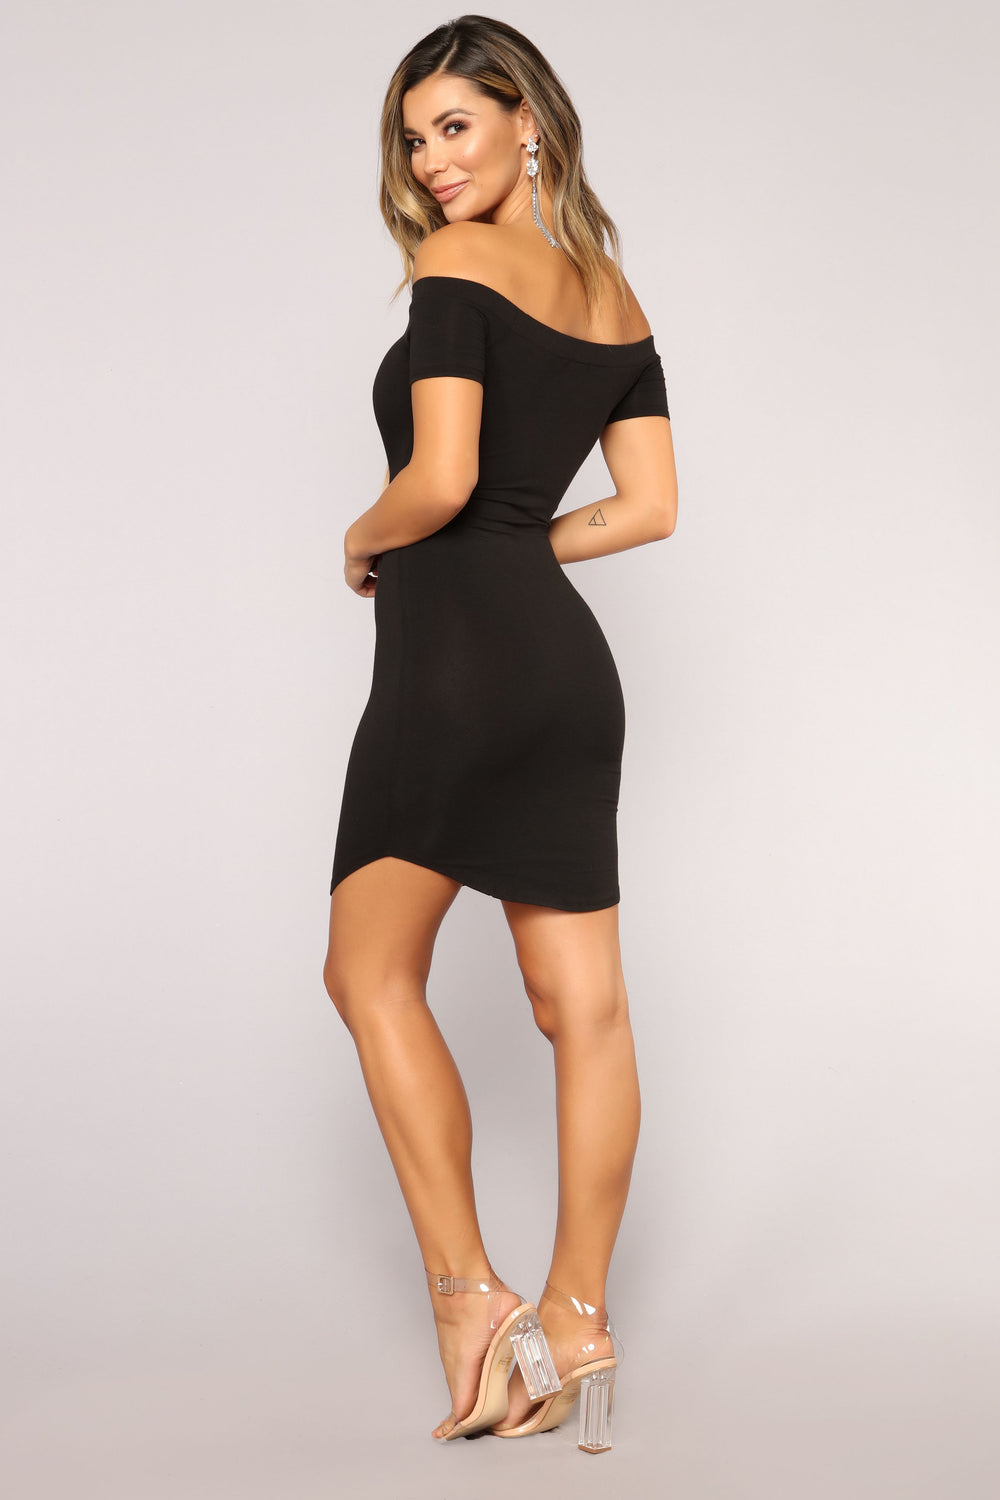 Summer Nights Dress - Black